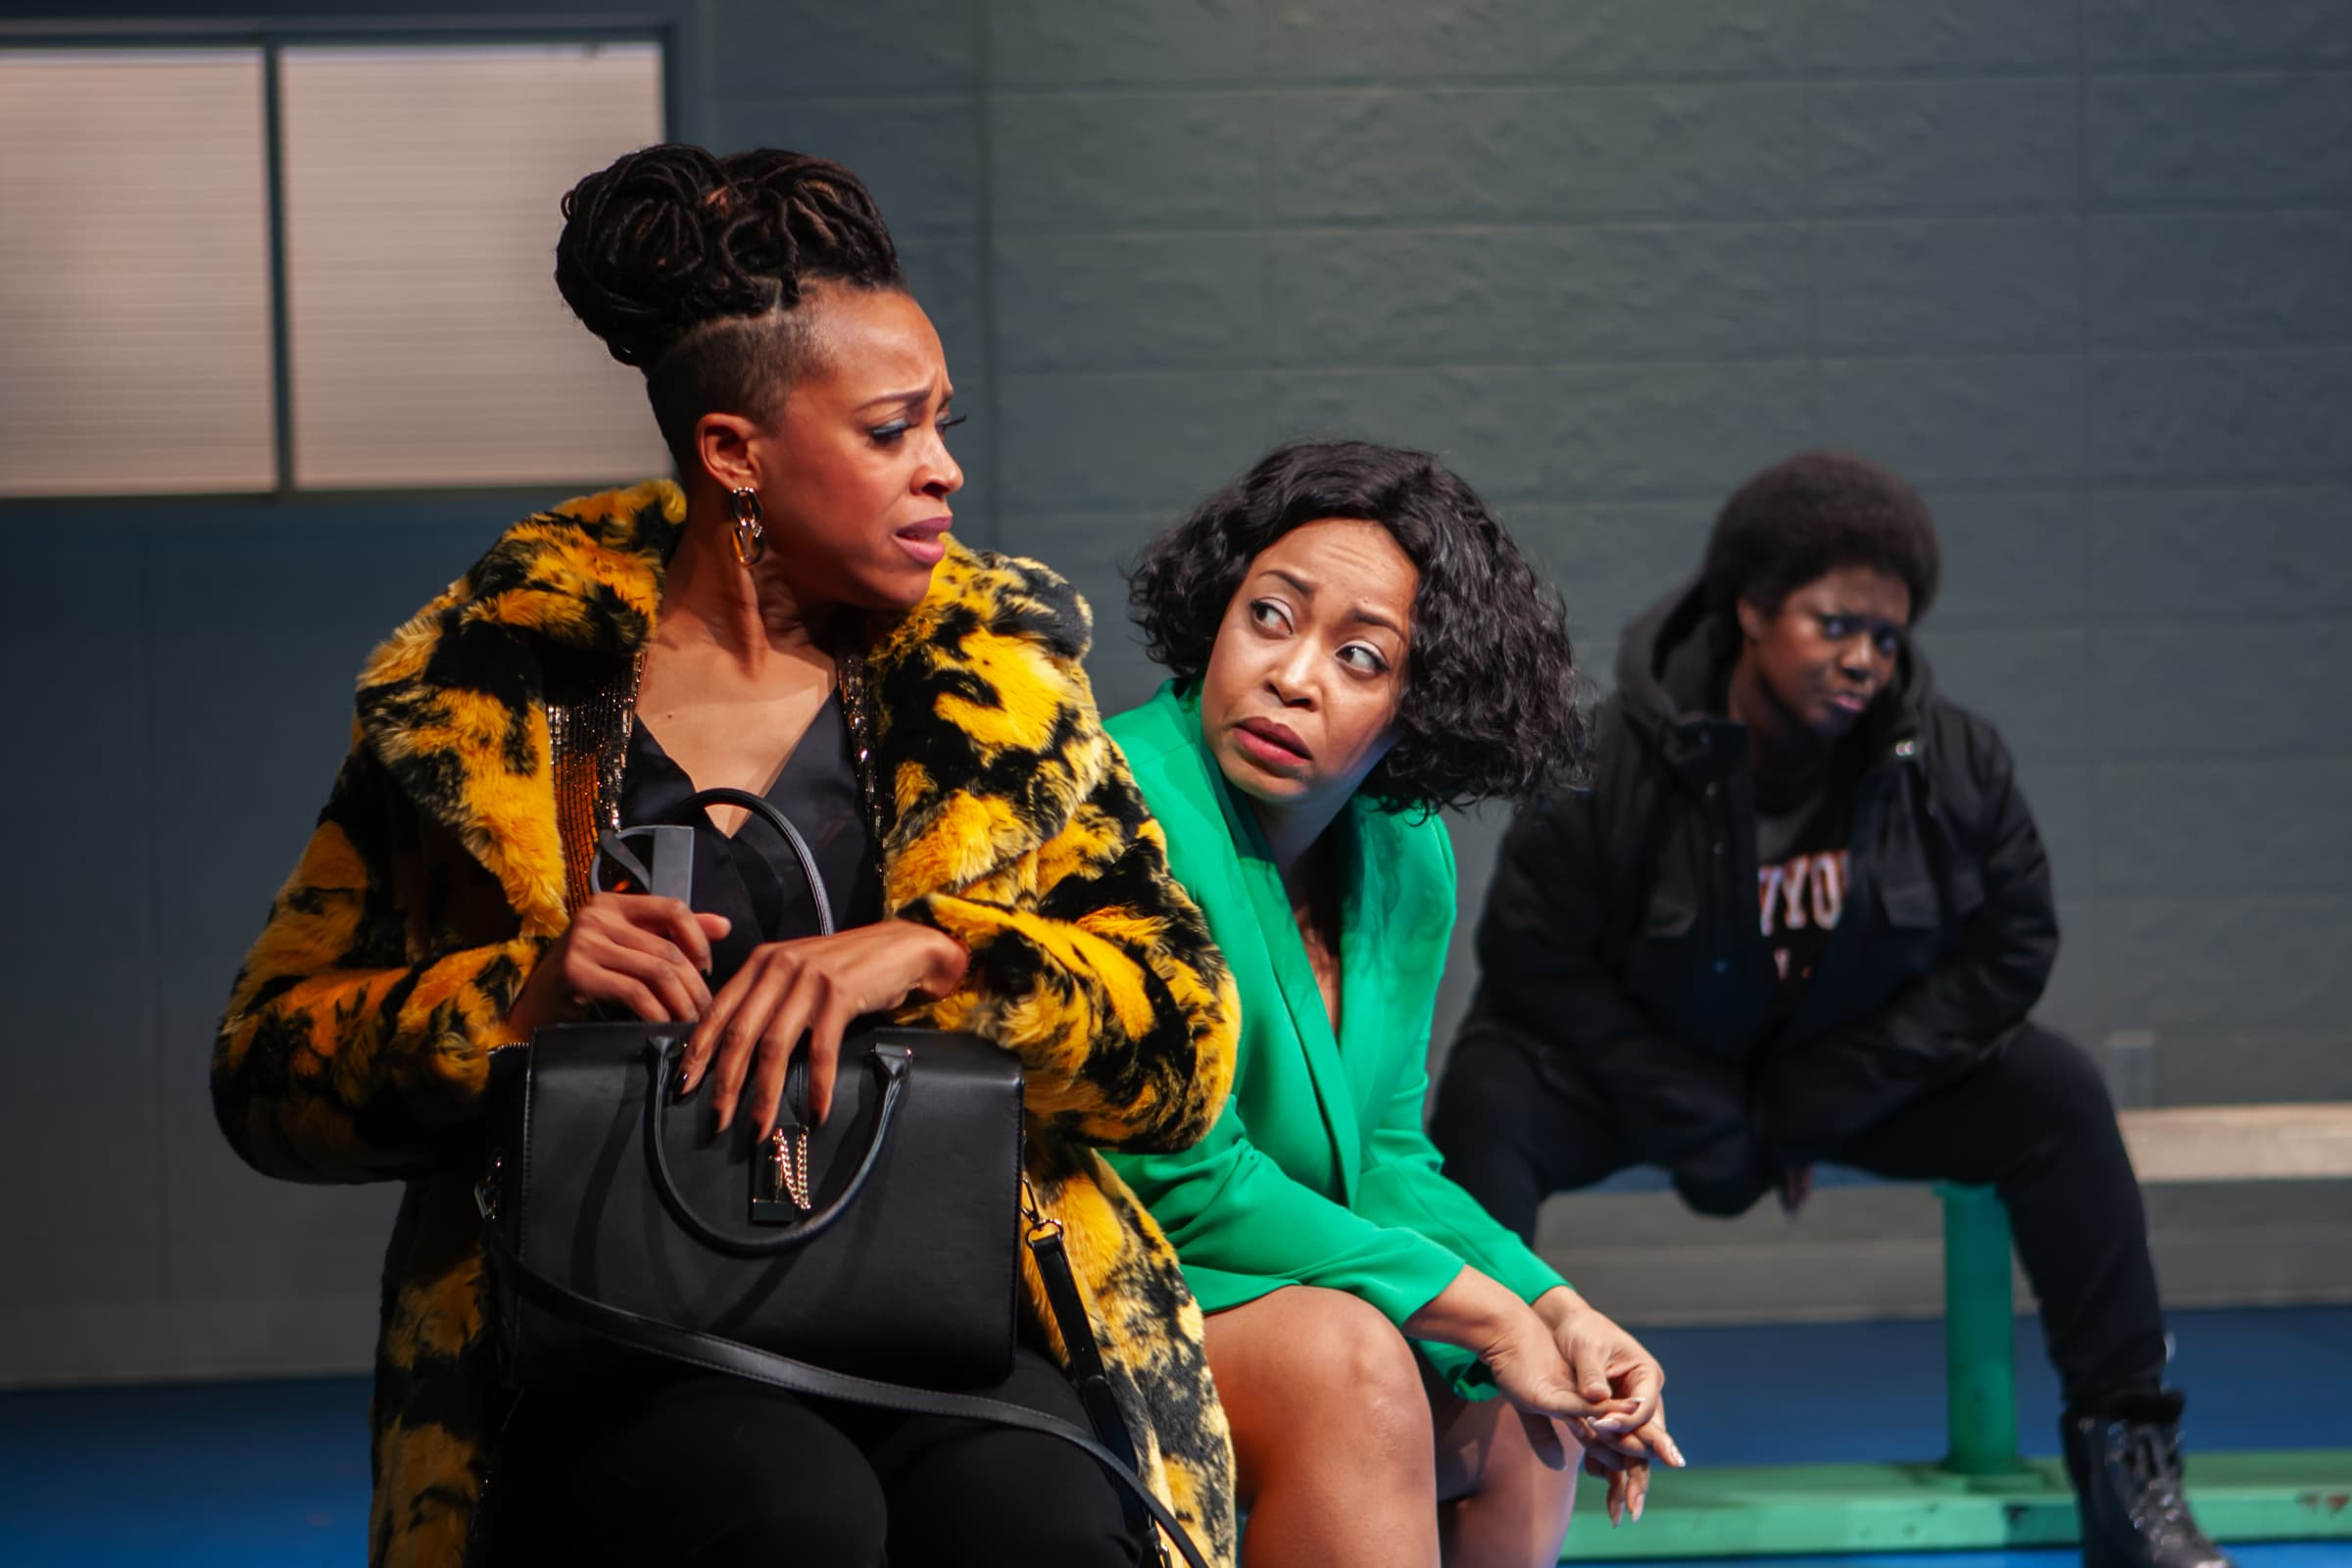 Cherise Boothe, Nikiya Mathis, and Heather Alicia Simms in Fabulation, or The Re-Education of Undine by Lynn Nottage and directed by Lileana Blain-Cruz. (Photo: Monique Carboni)